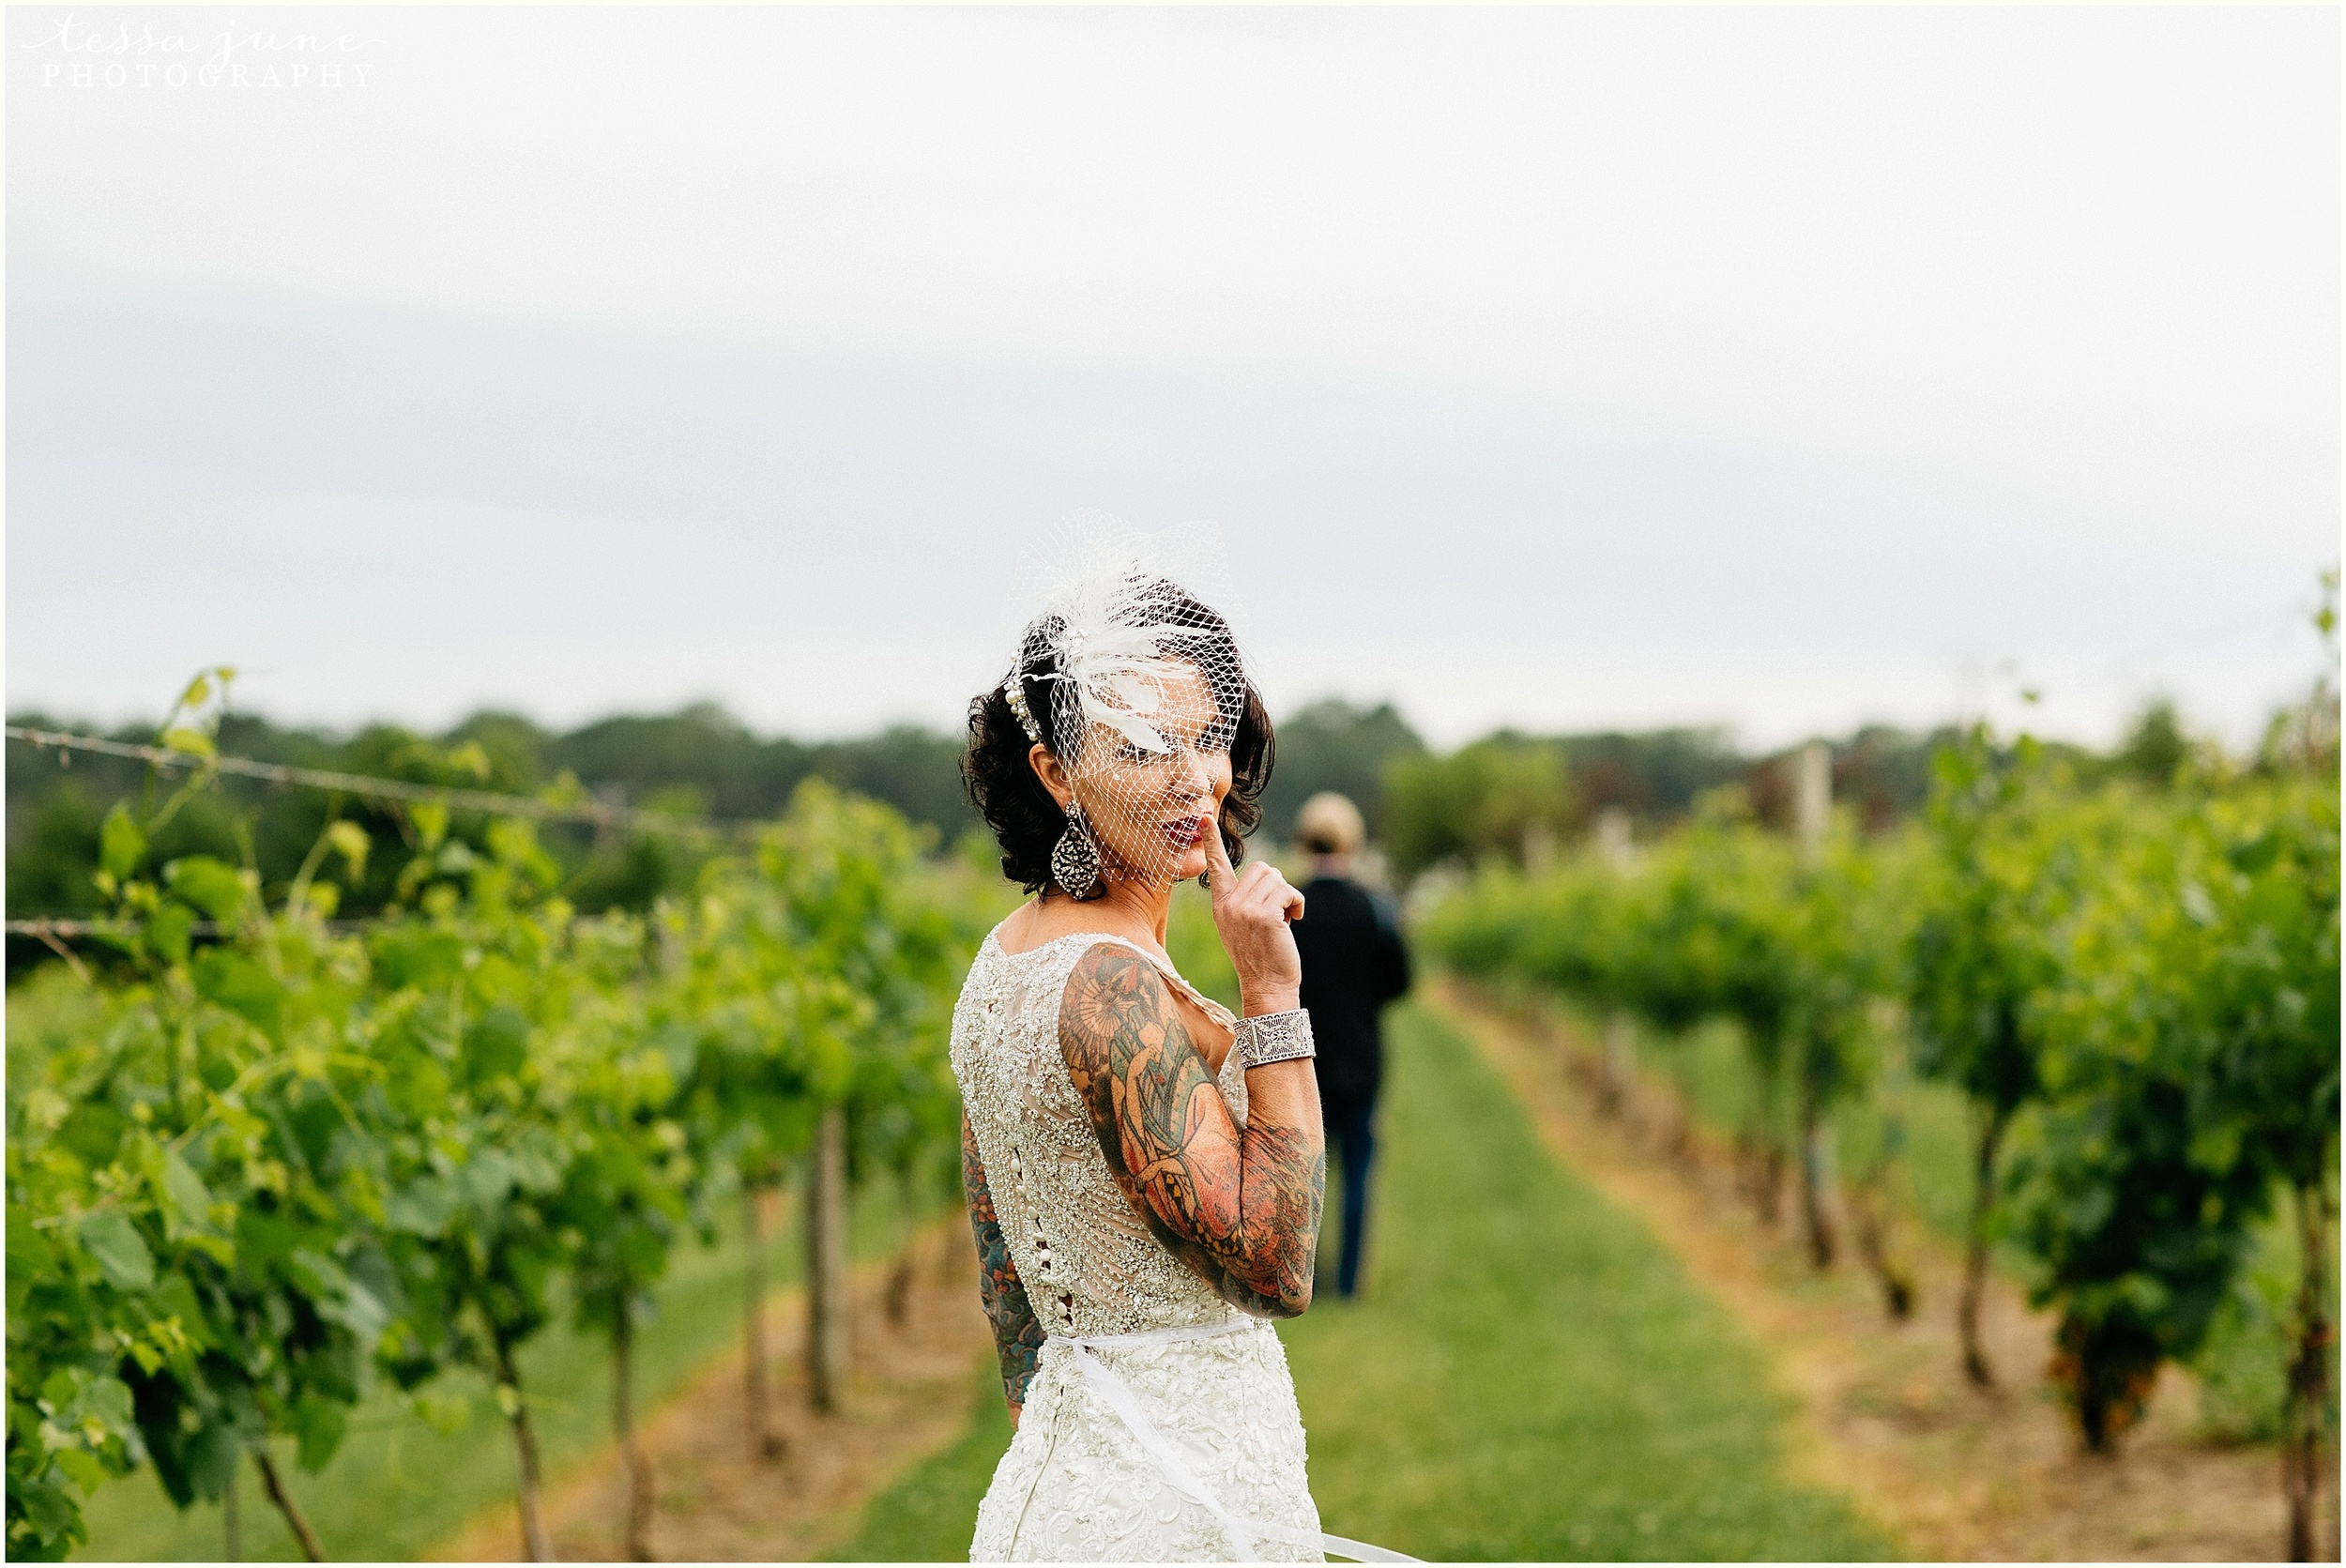 carlos-creak-winery-alexandira-minnesota-wedding-st-cloud-photographer-first-look